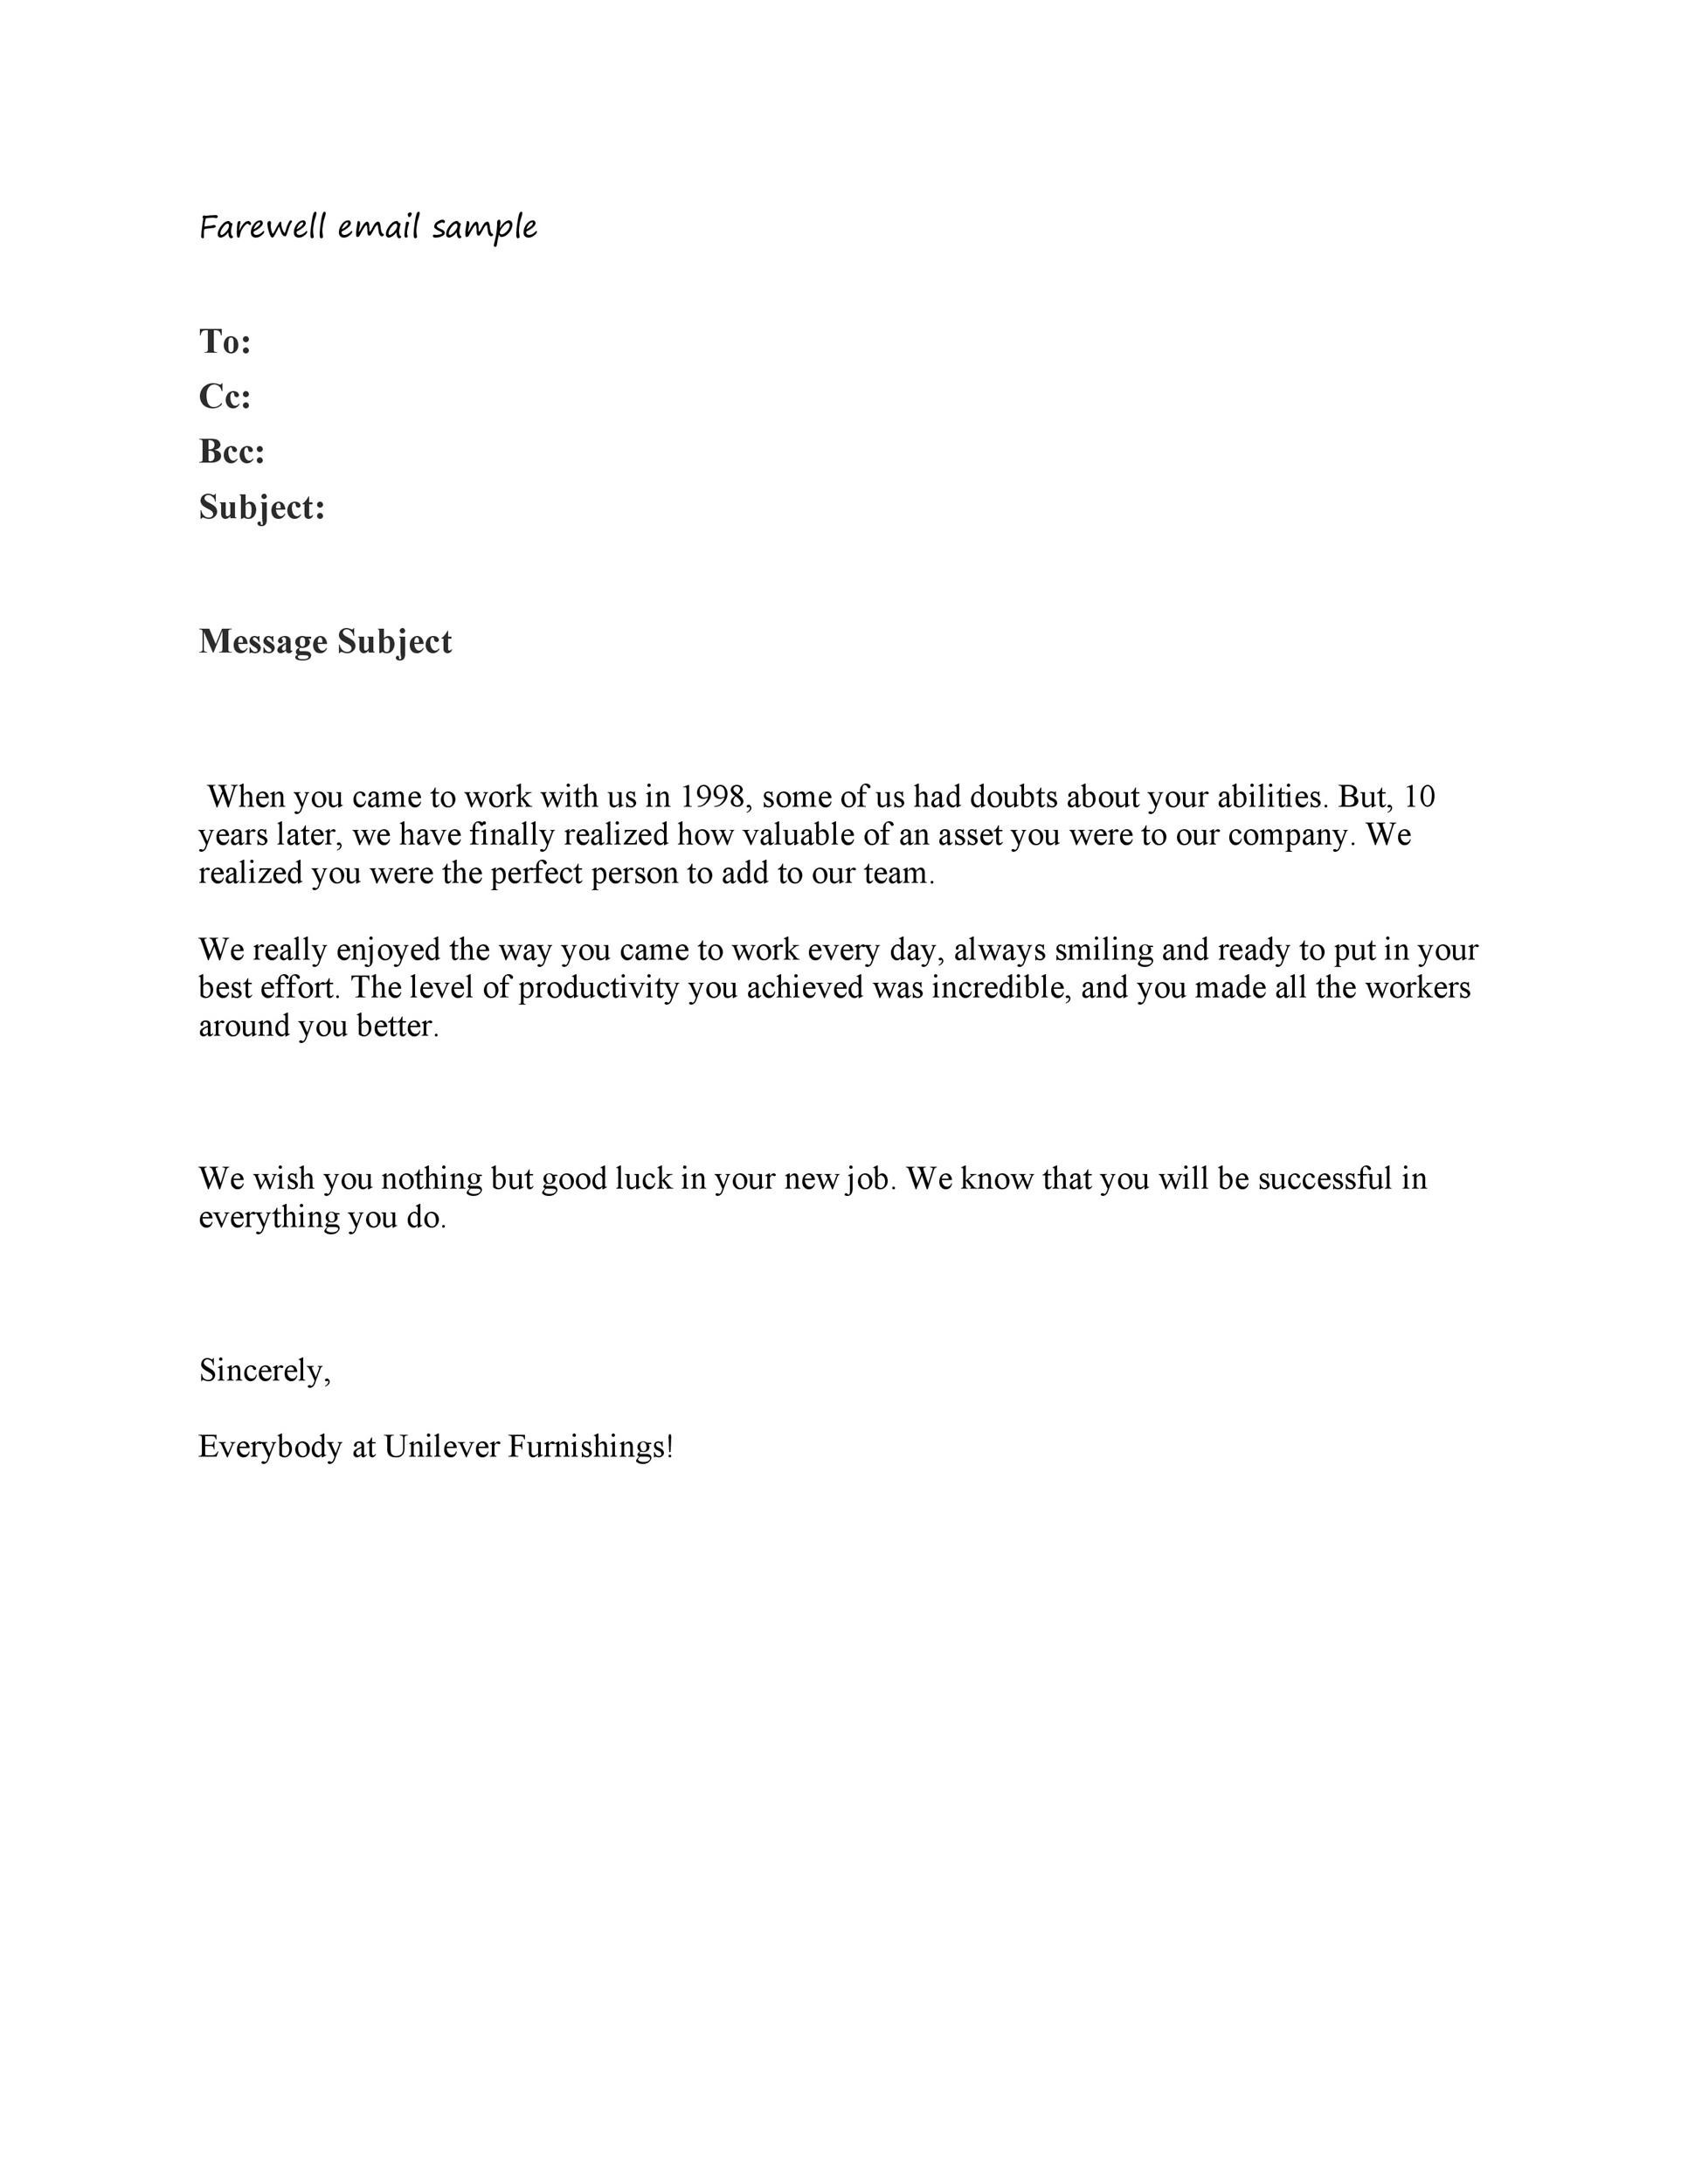 40+ Farewell Email Templates to Coworkers ᐅ Template Lab